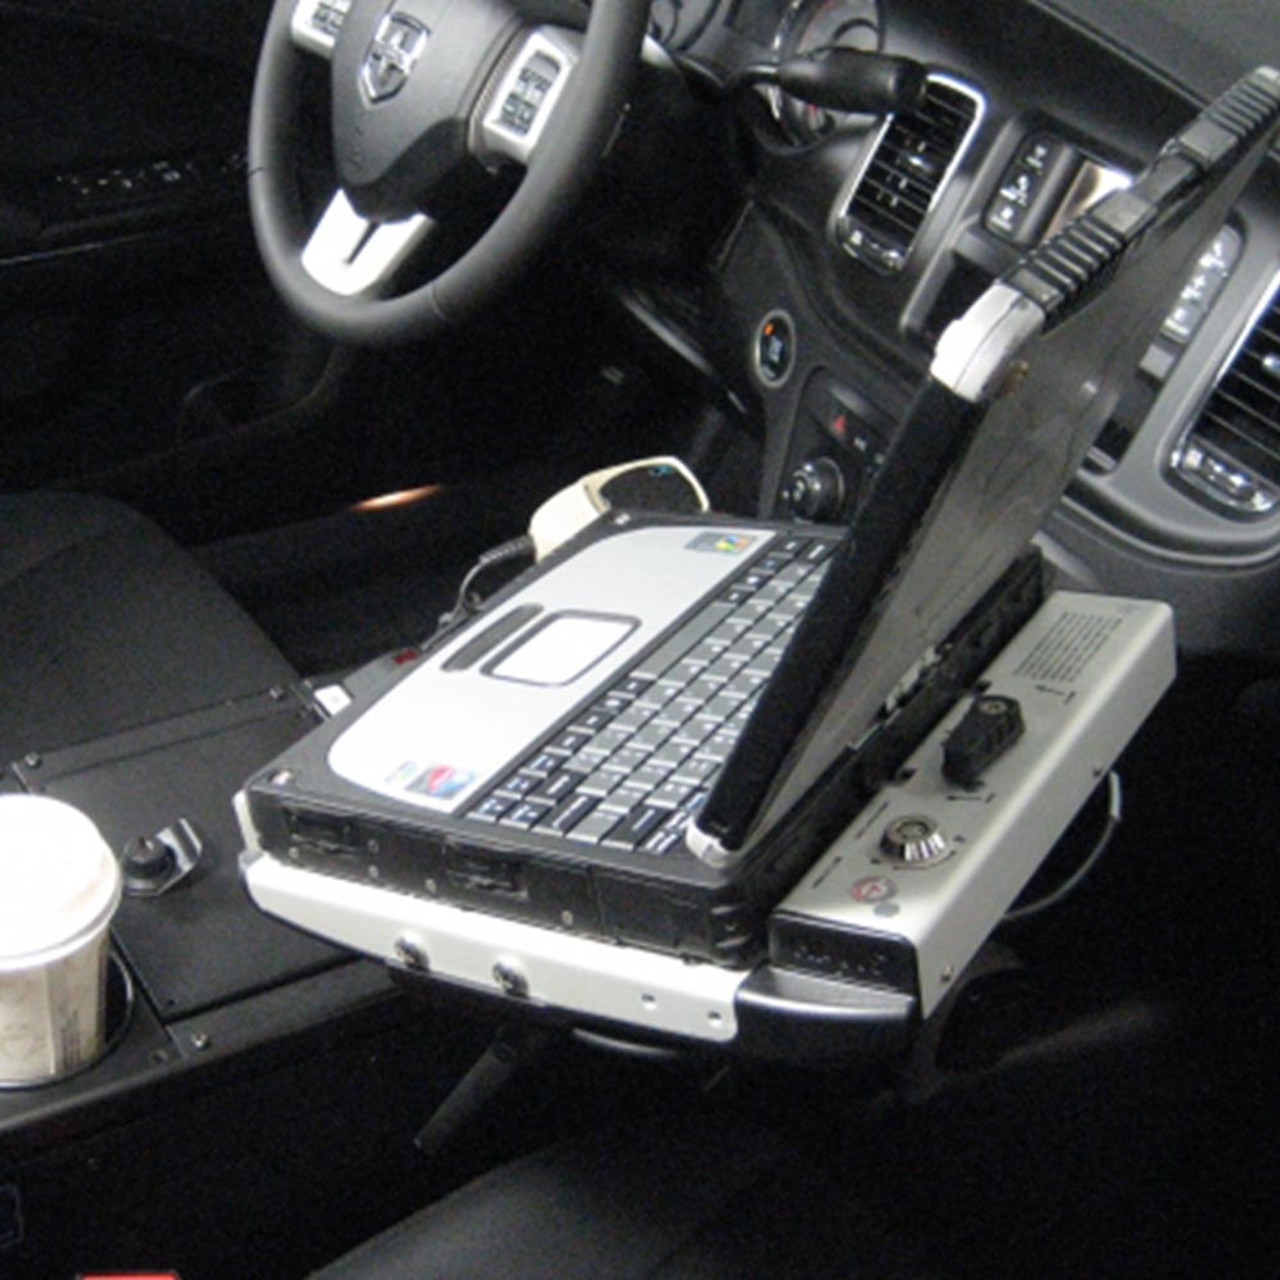 Charger Police Console 25 Inch by Havis 2011-2020, C-VS-2500-CHGR-1, provides additional depth for mounting equipment